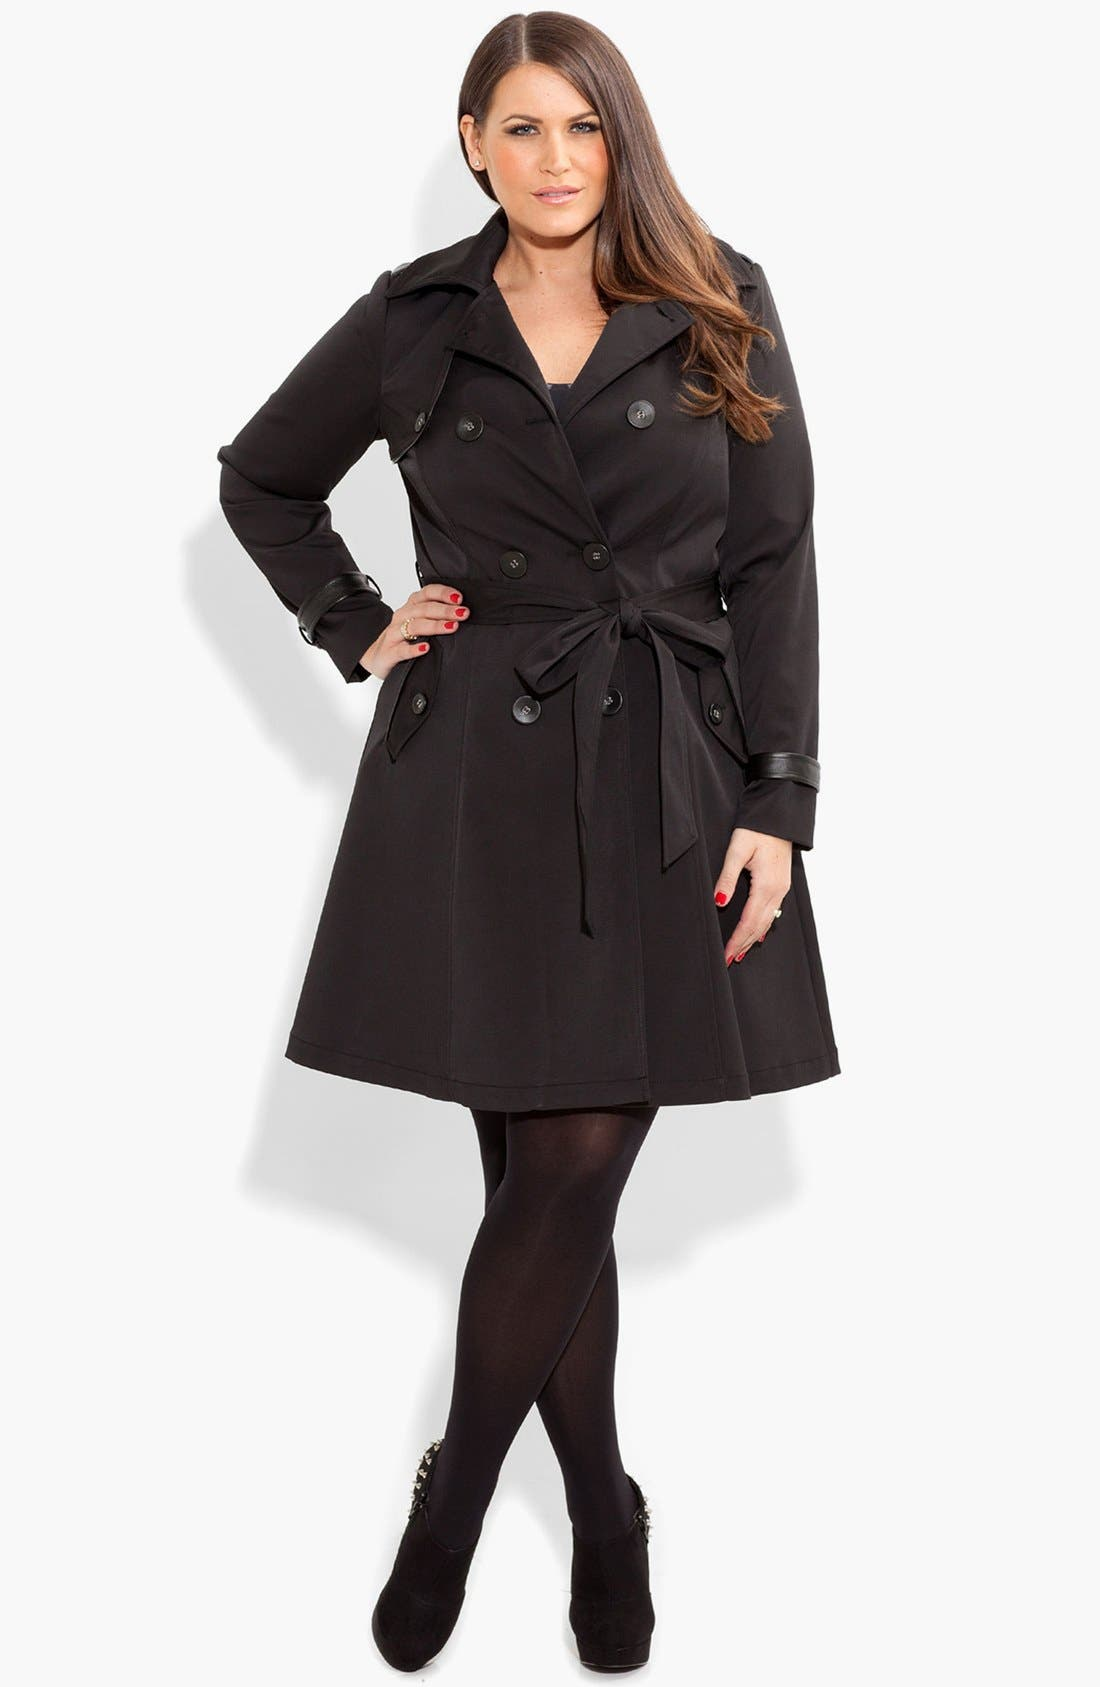 Main Image - City Chic Corset Back Trench Coat (Plus Size)